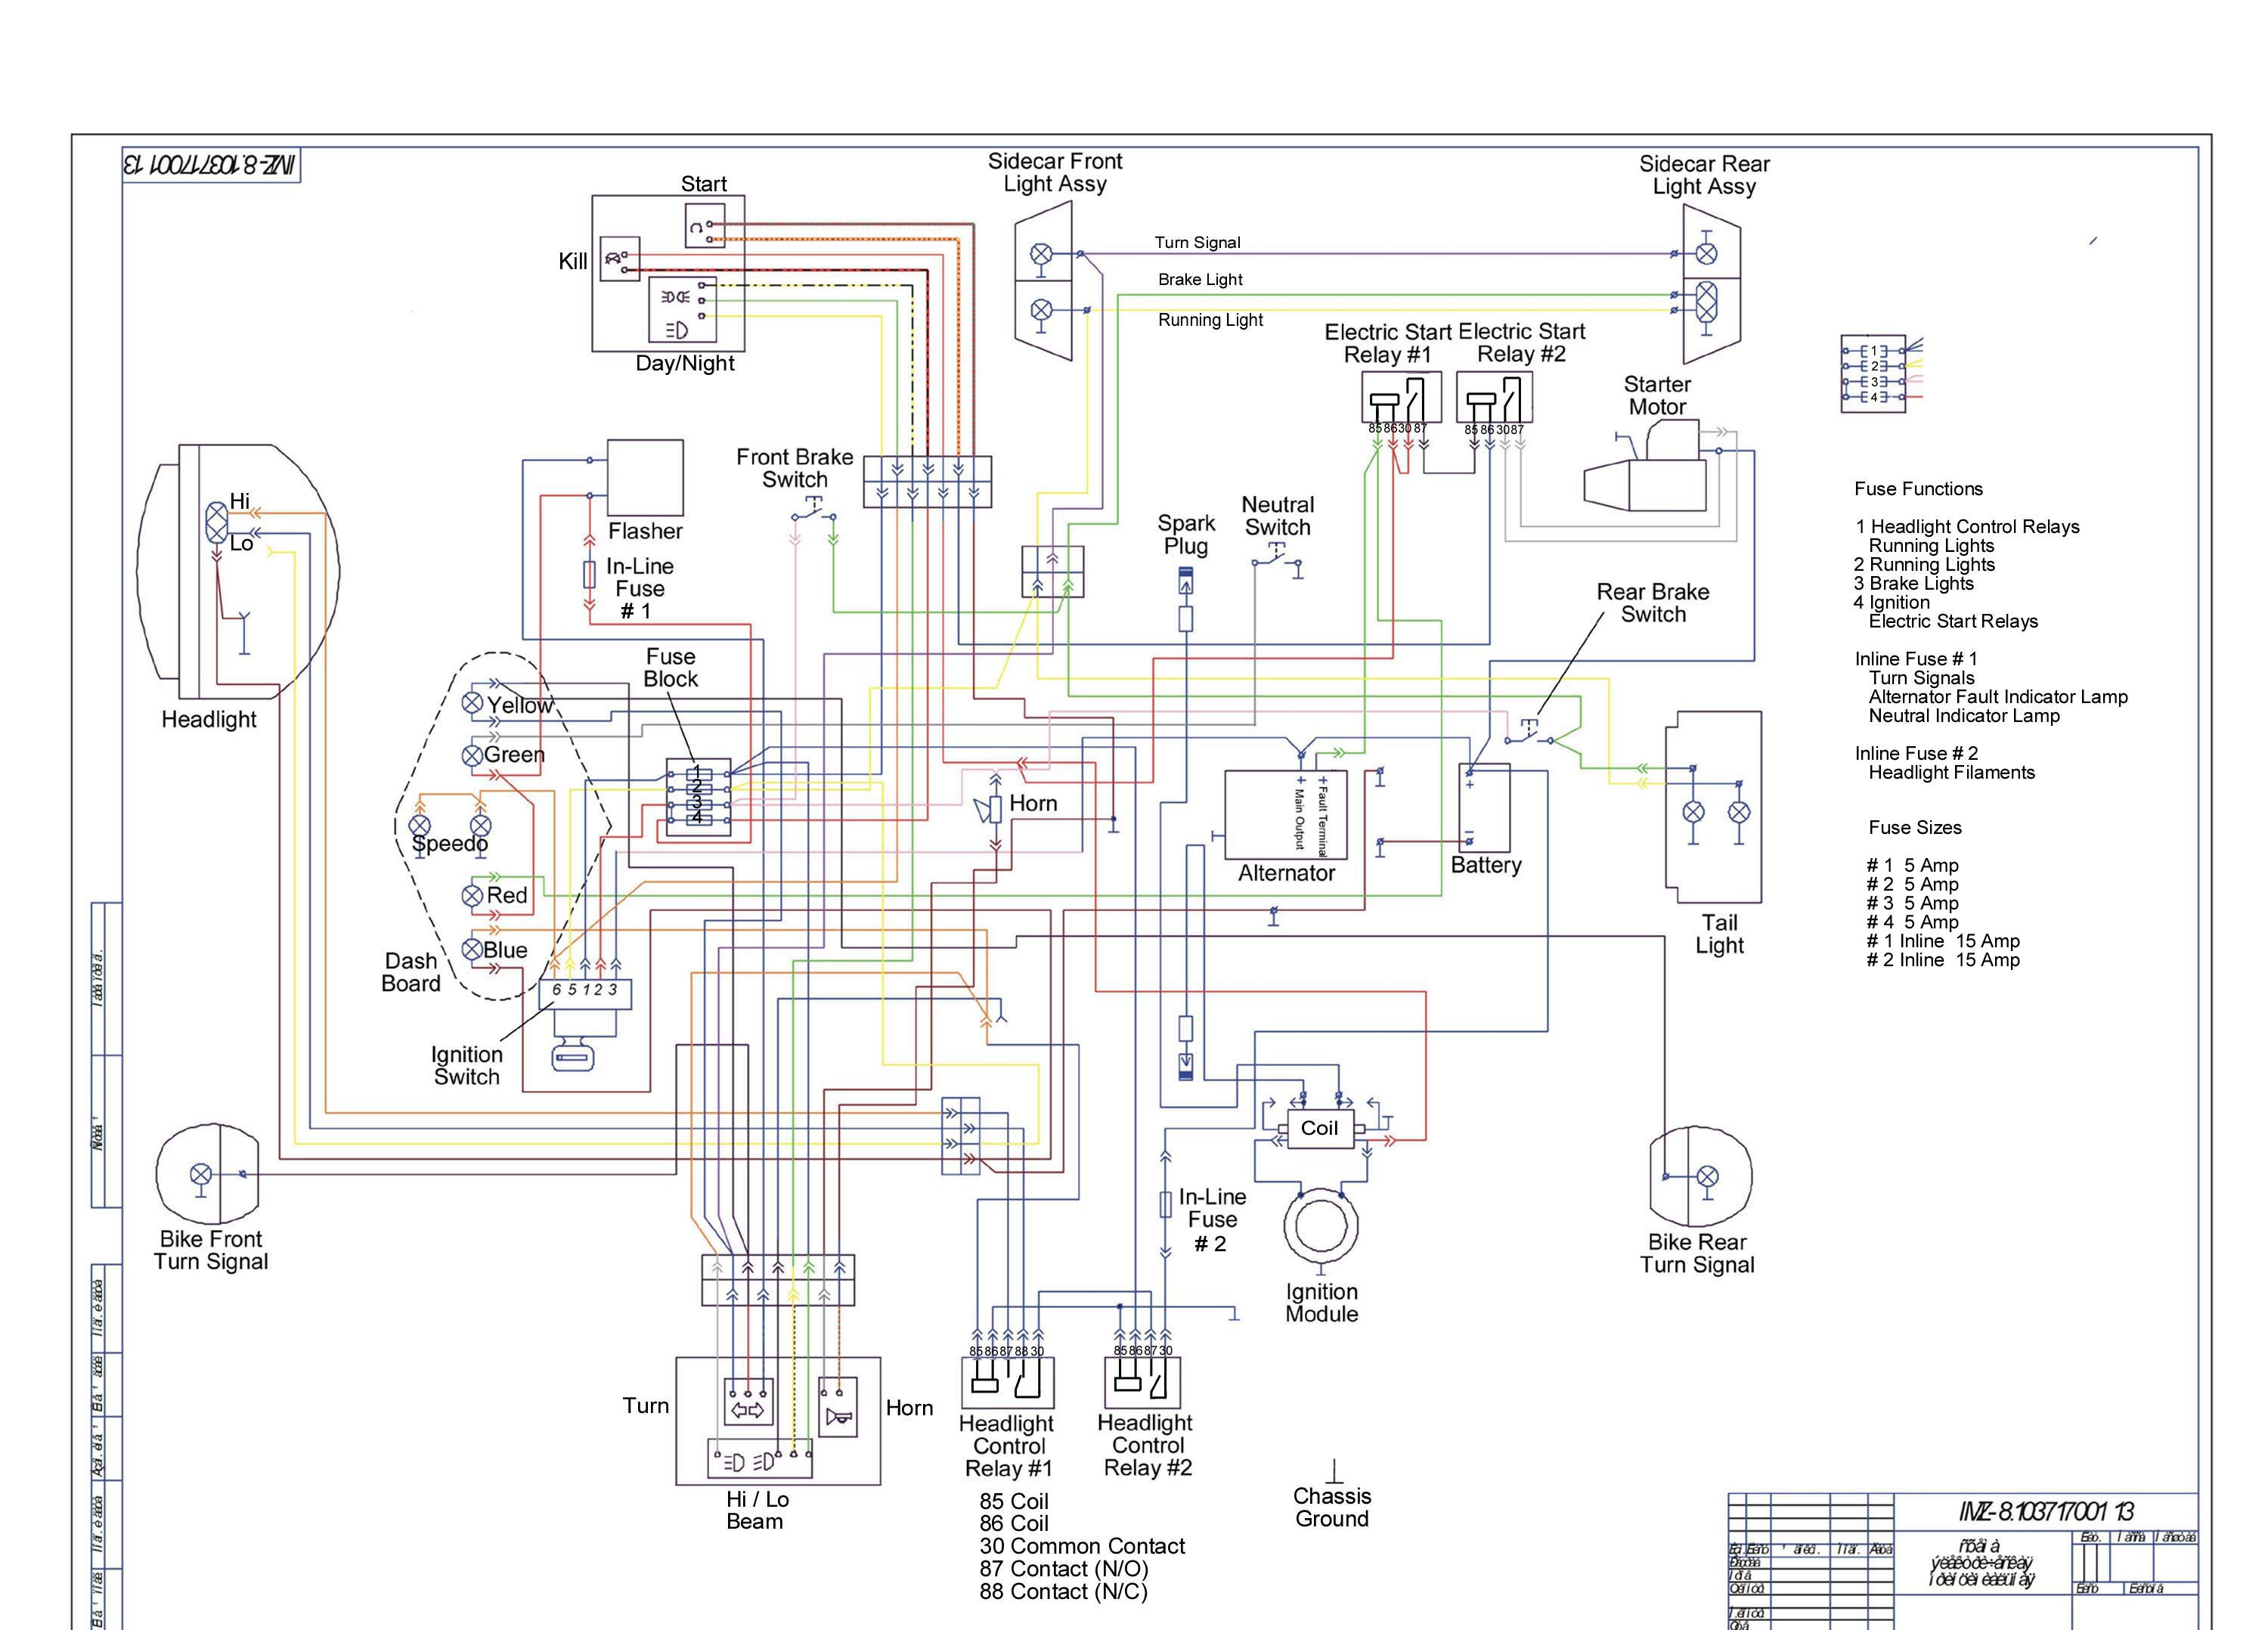 750 Wiring Schematic ural wiring diagrams ural download wirning diagrams  at readyjetset.co